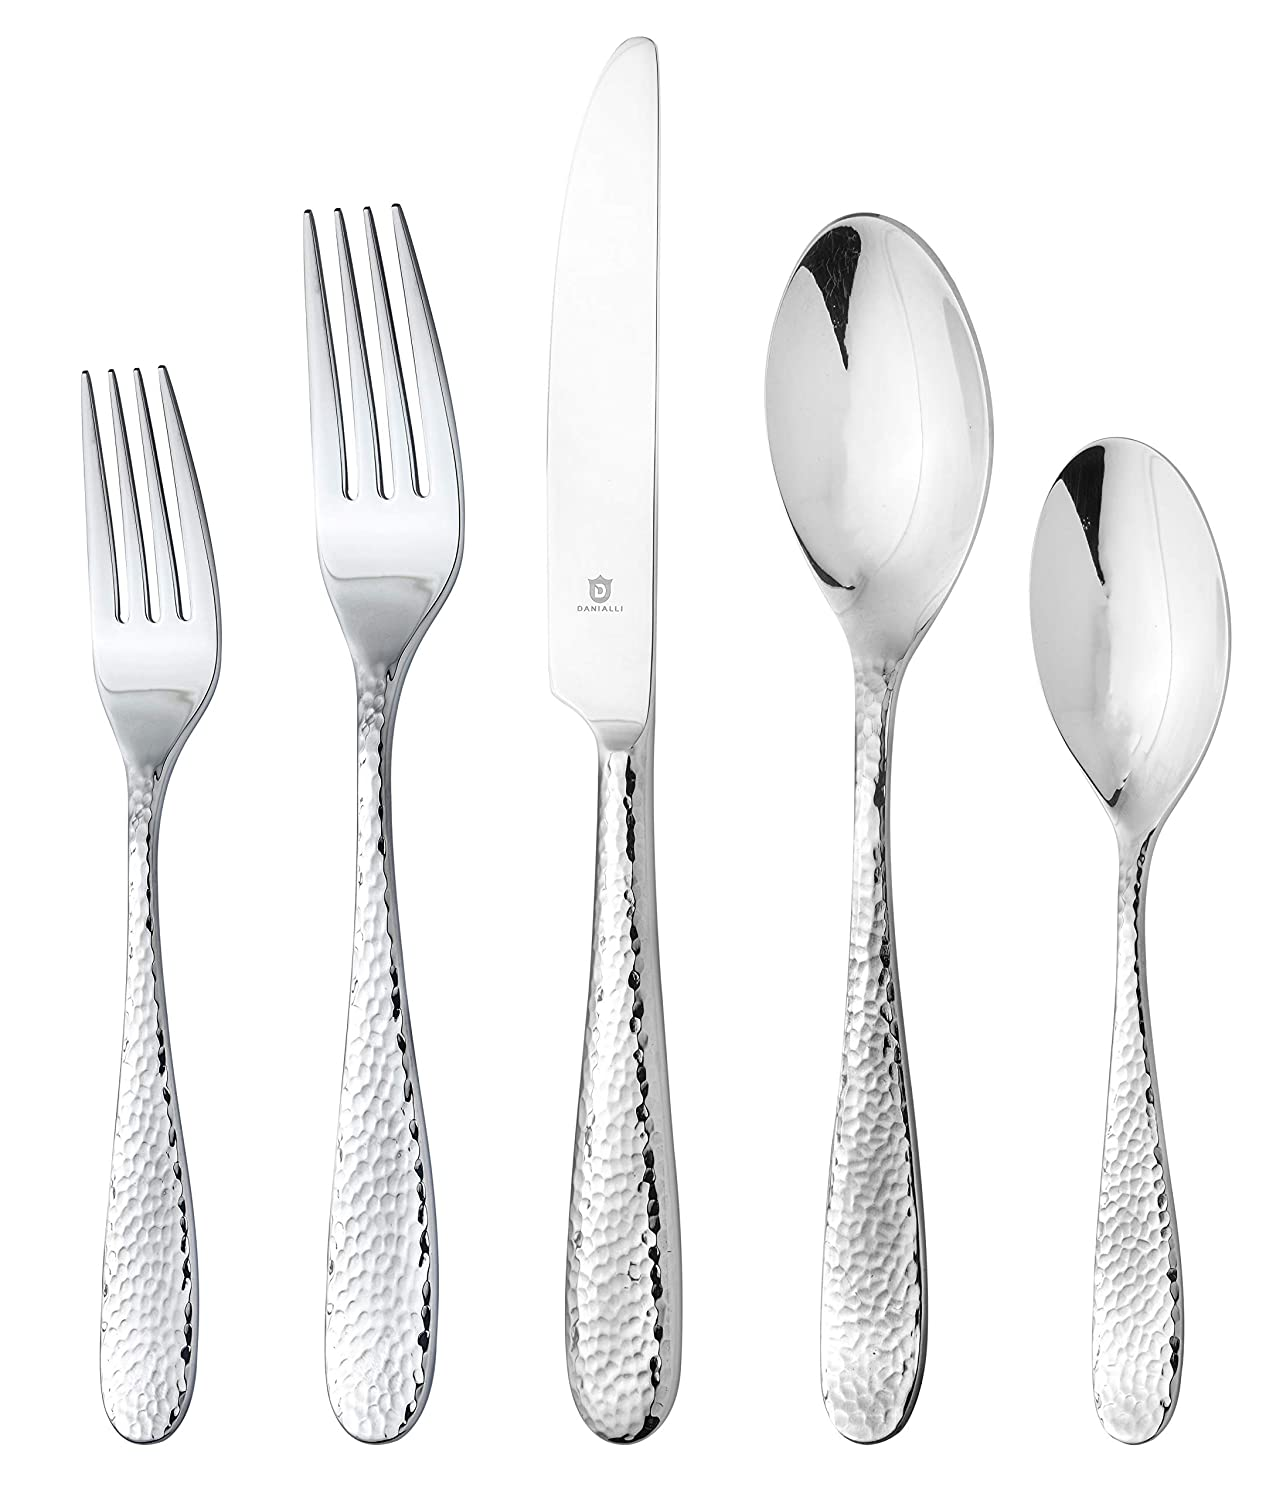 DANIALLI 40 Piece Silverware Set For 8, 18 10 Stainless Steel Silverware Set, Modern Hammered Flatware Set, Include Knife/Fork/Spoon & Long Teaspoon/Salad Fork Mirror-Polished Dishwasher Safe Cutlery